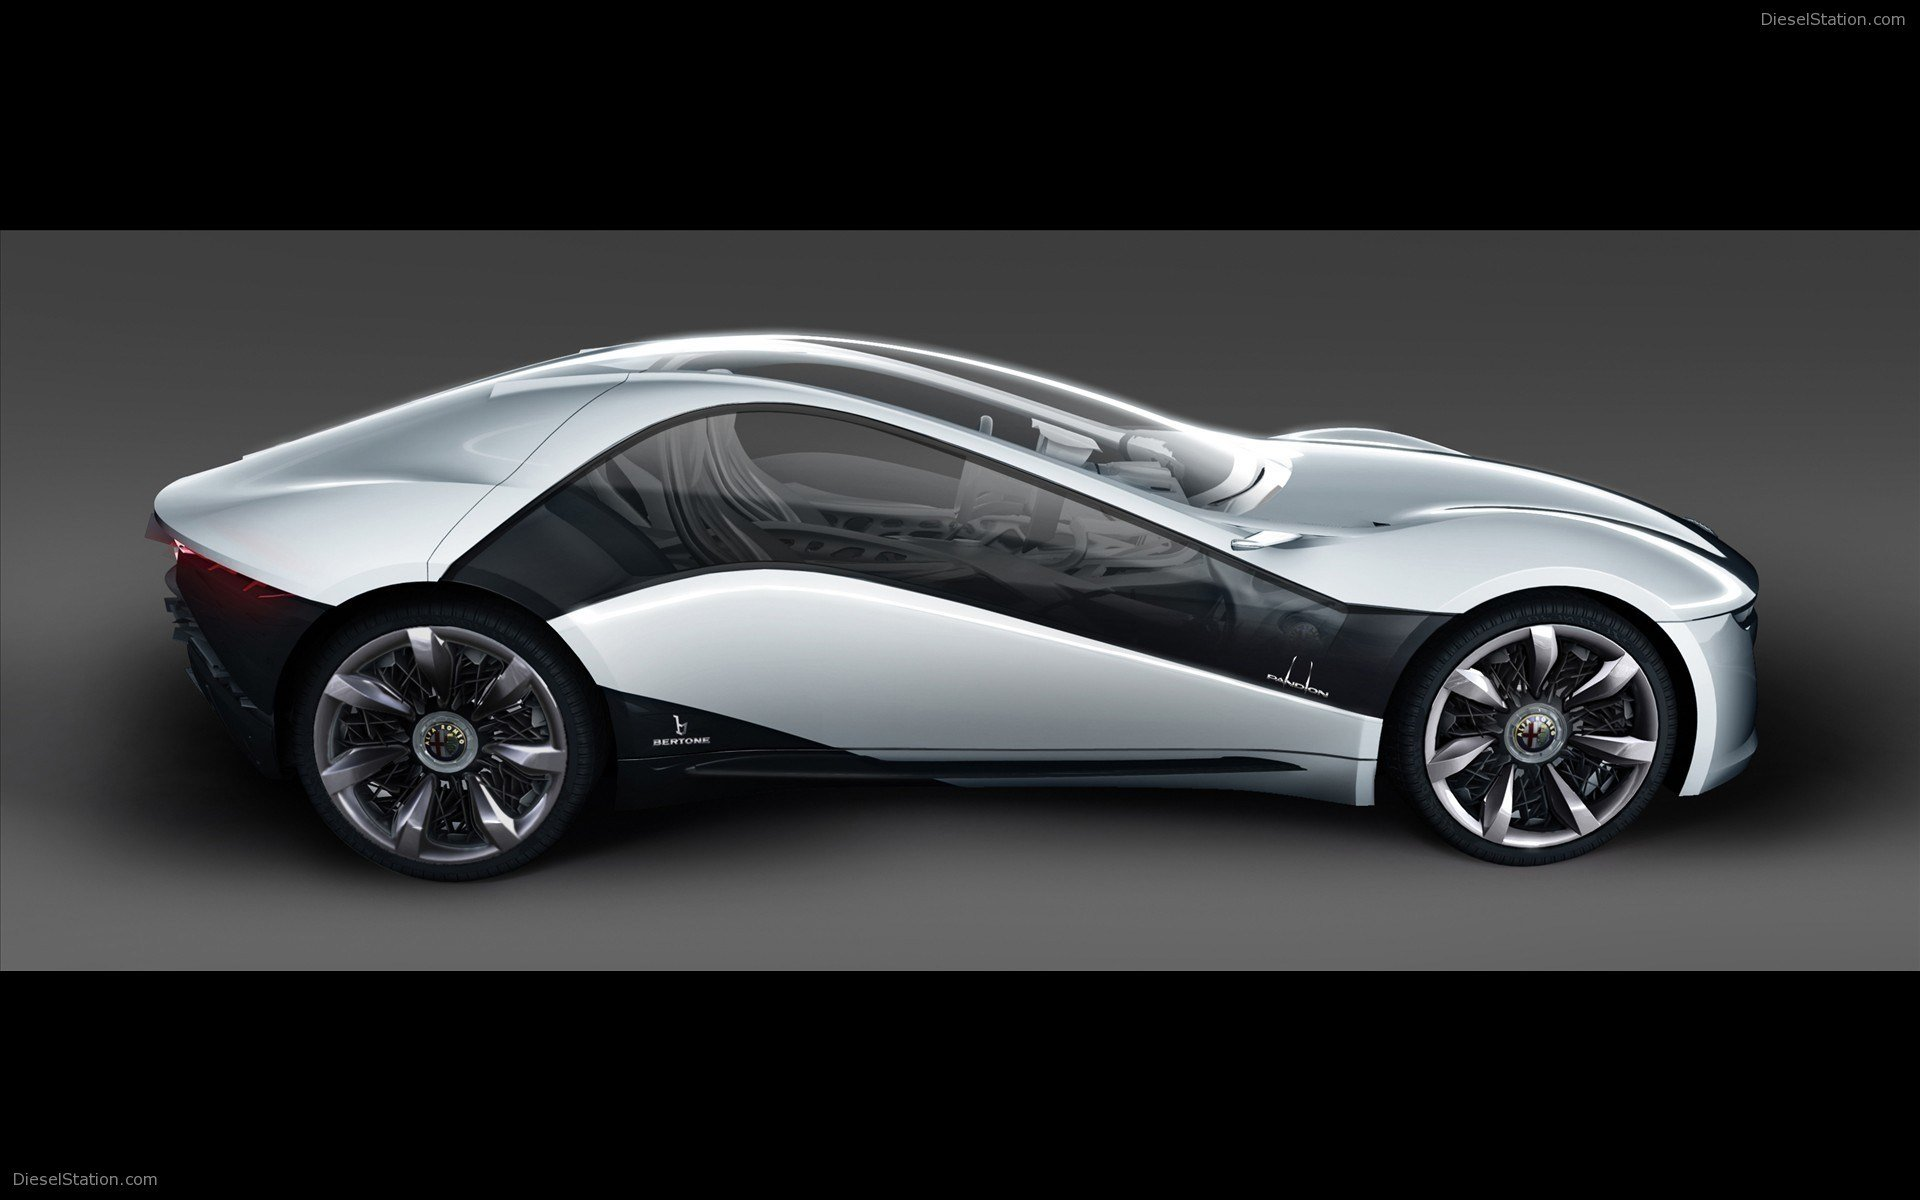 Latest Bertone Pandion Dream Alfa Romeo Widescreen Exotic Car Free Download